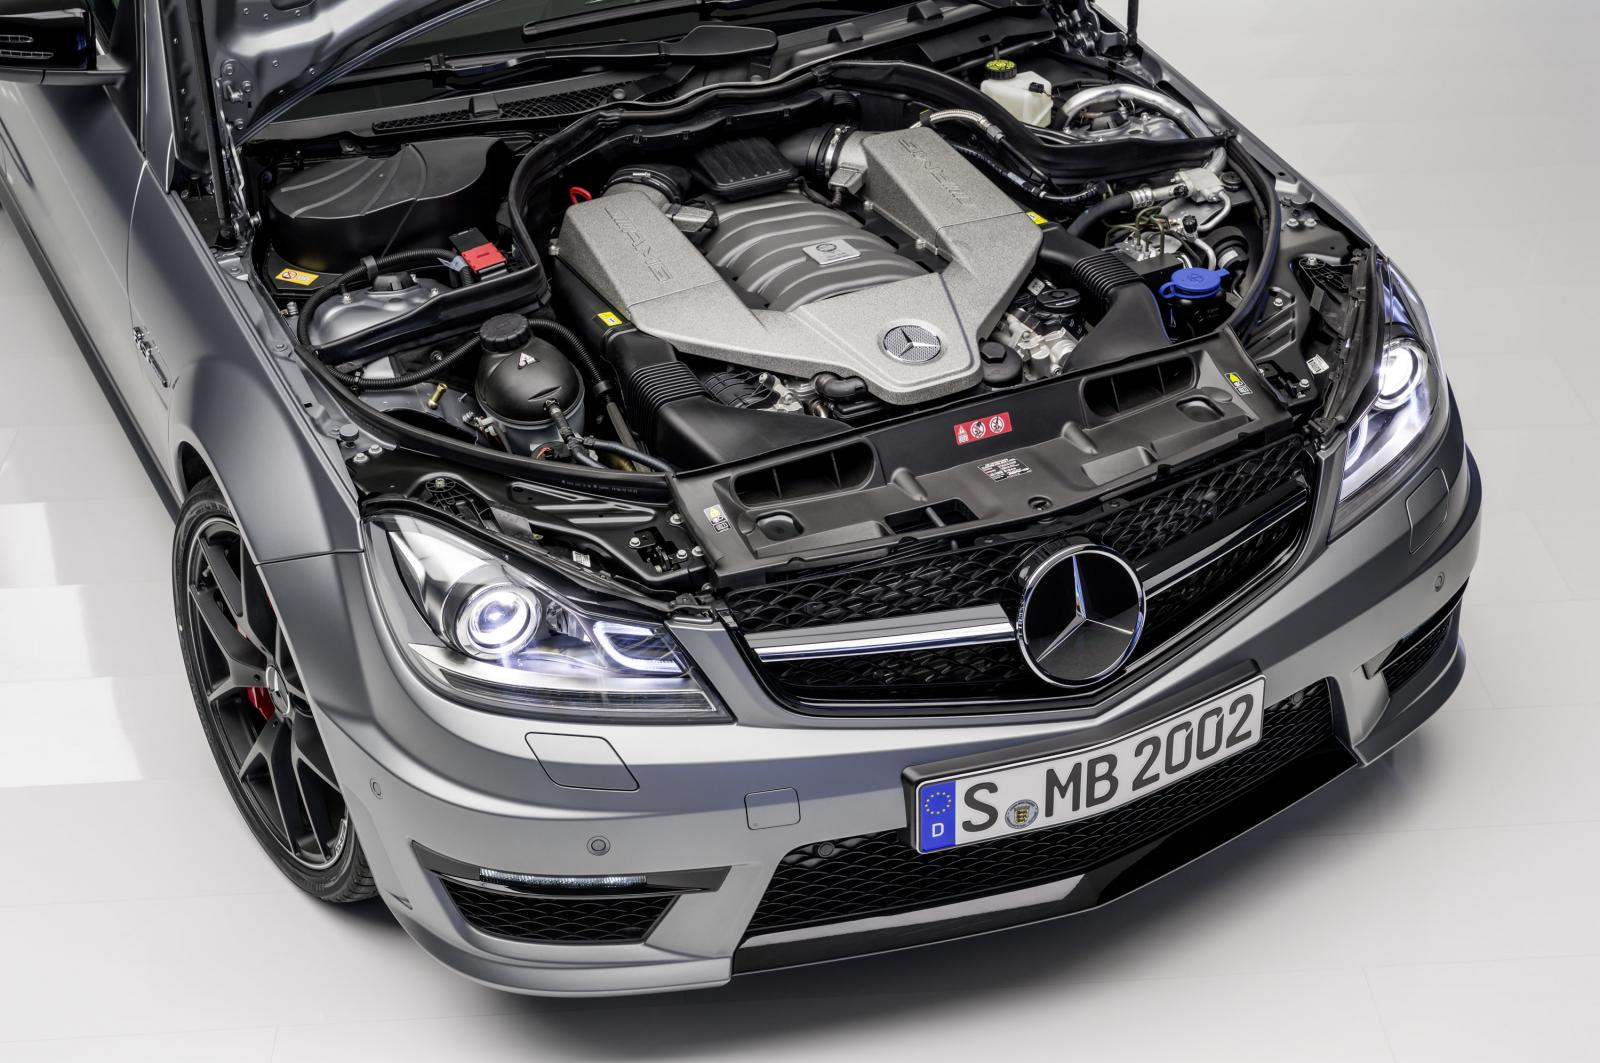 2014 mercedes benz c63 amg edition 507 released video for Mercedes benz c63 engine